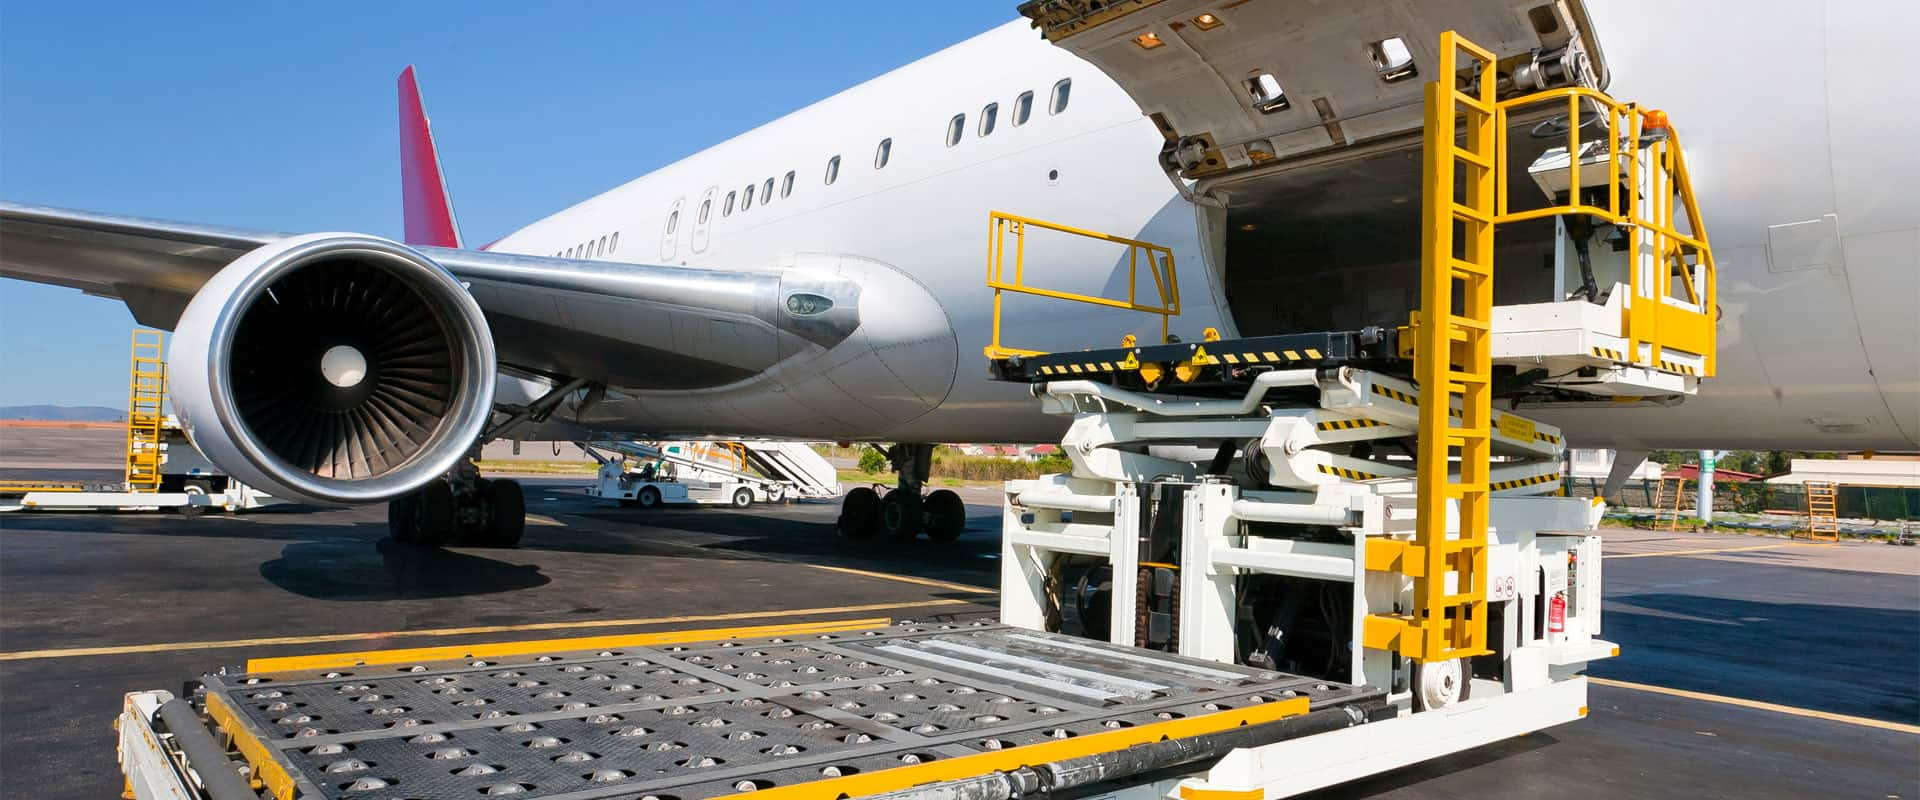 No time to spare in the shop for airfreight deals